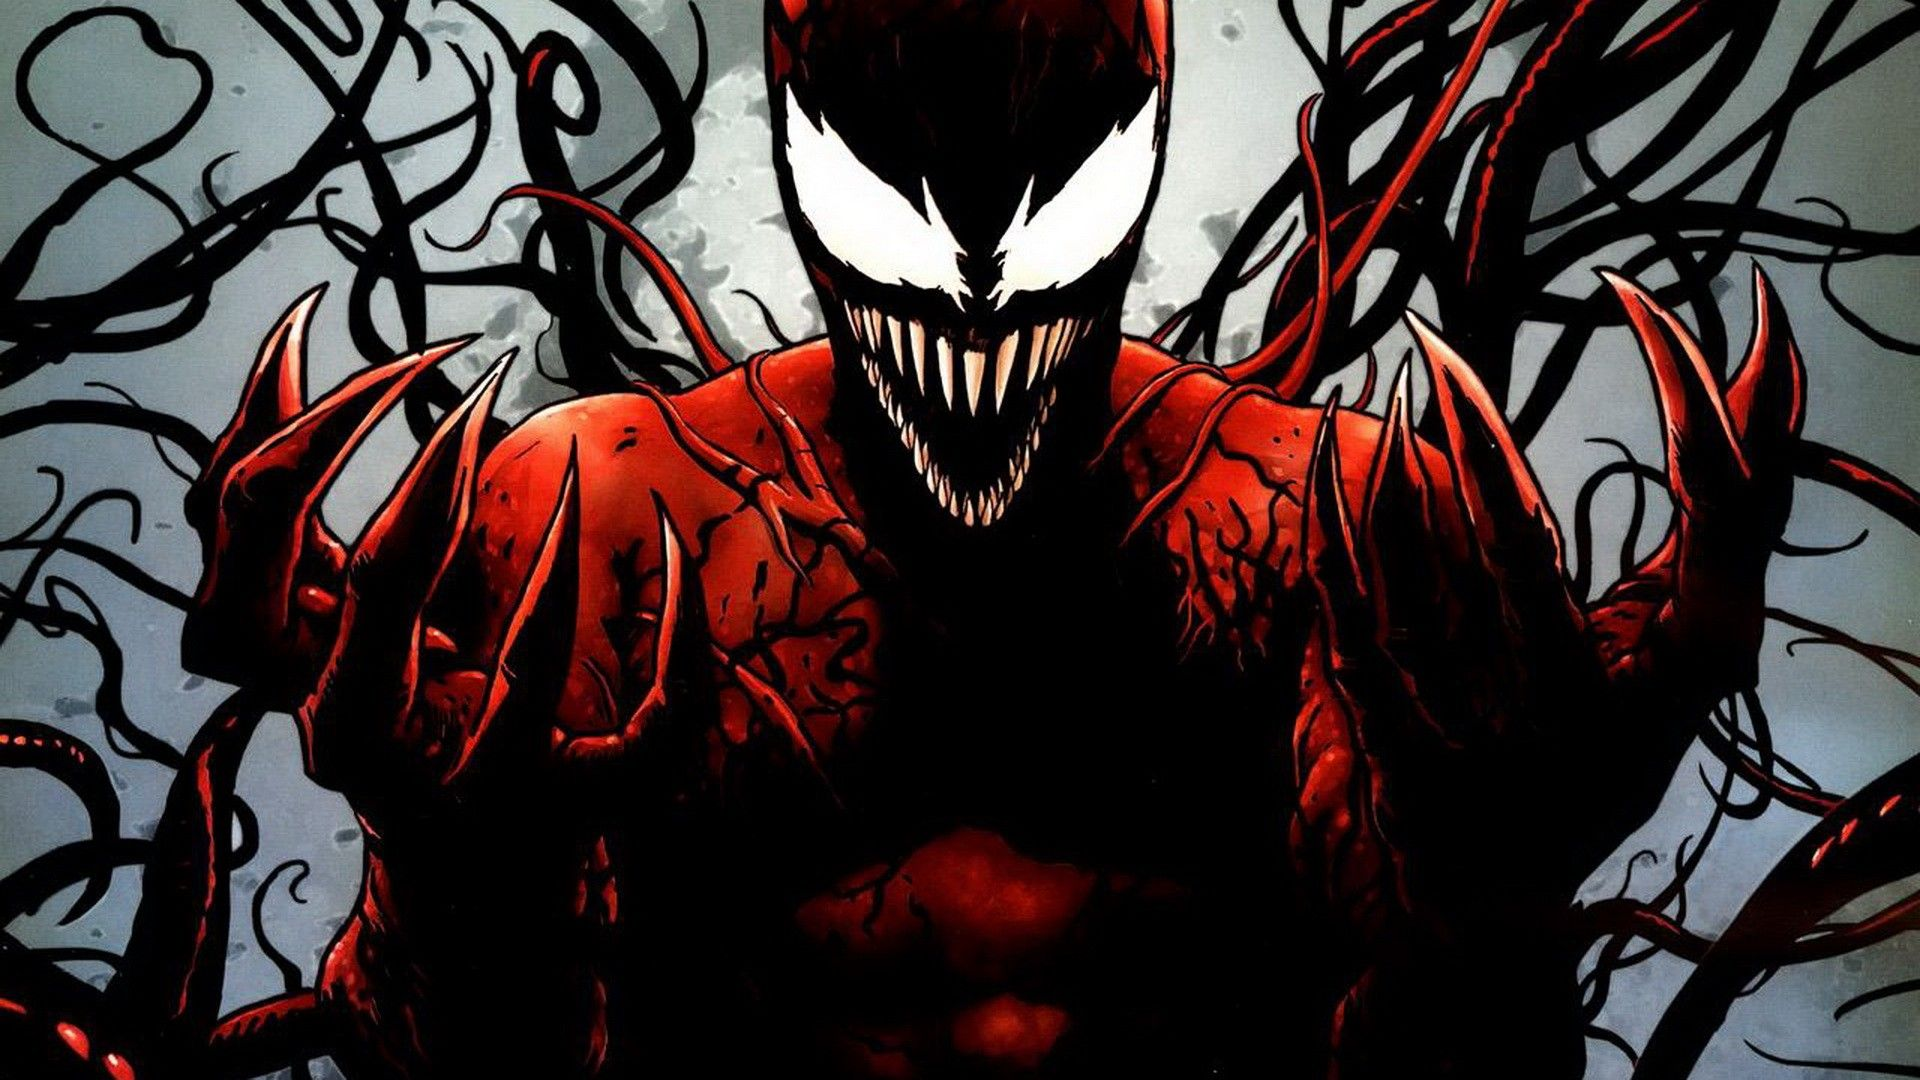 Spider Man Vs Carnage Wallpapers Top Free Spider Man Vs Carnage